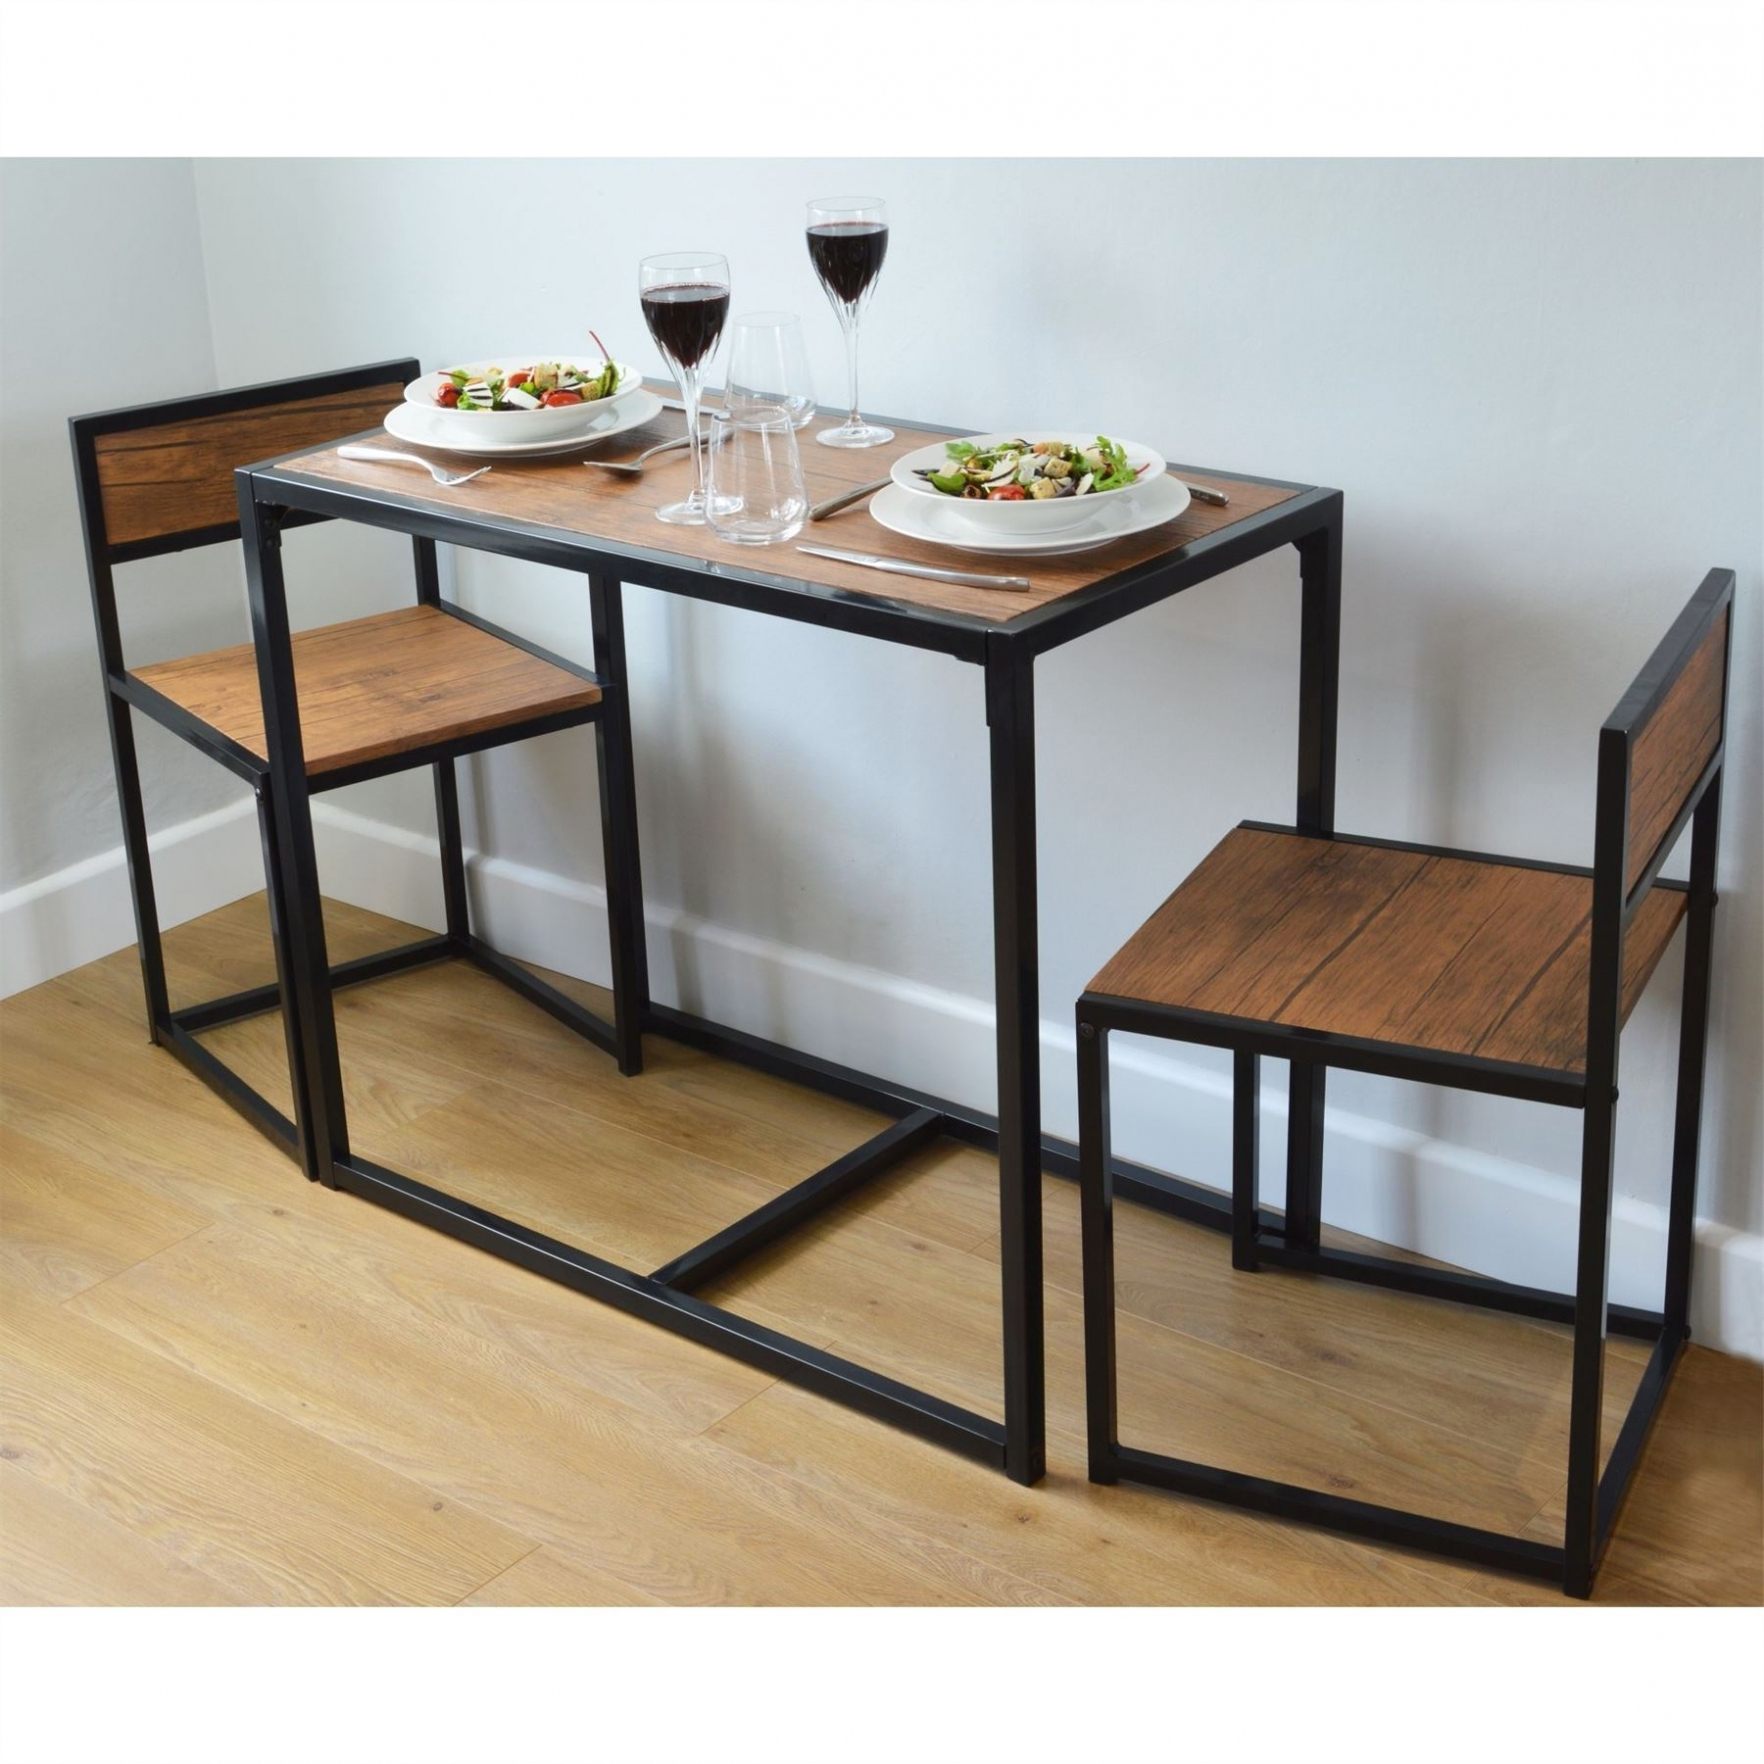 Famous Two Person Dining Tables Intended For Dining: 2 Person Space Saving, Compact, Kitchen Dining Table (View 6 of 25)